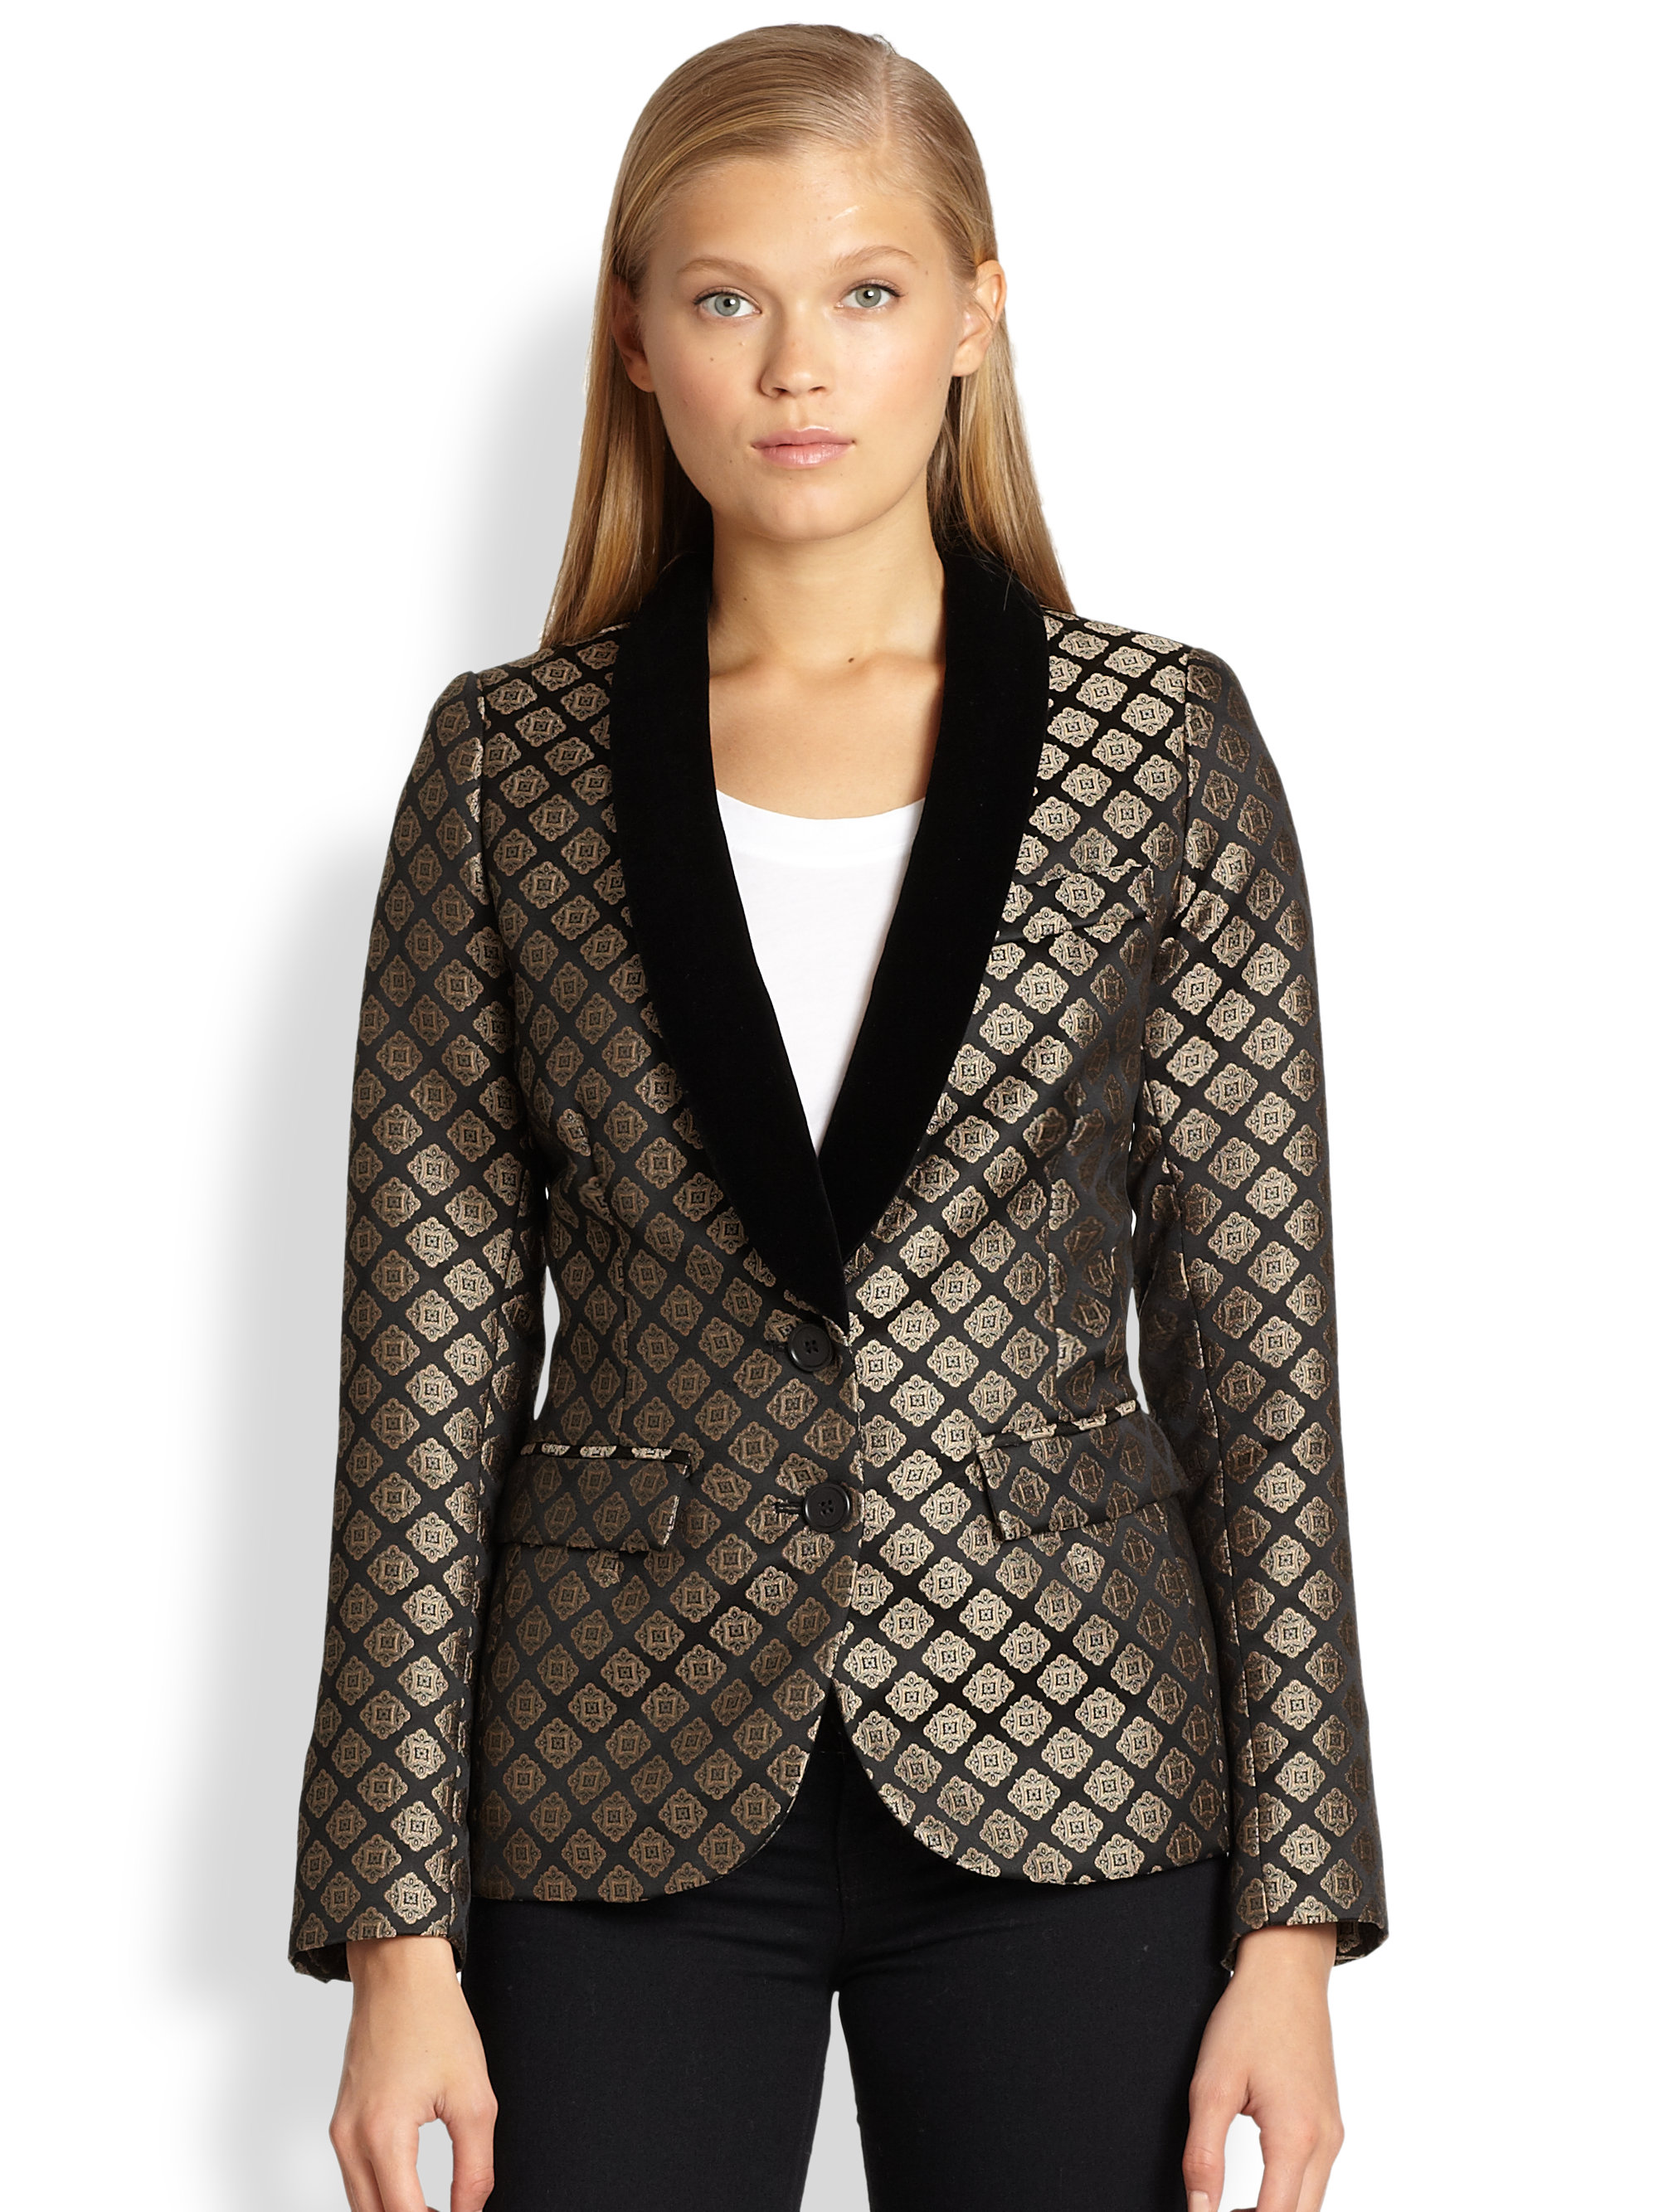 Smythe Velvettrimmed Metallic Jacquard Smoking Jacket In